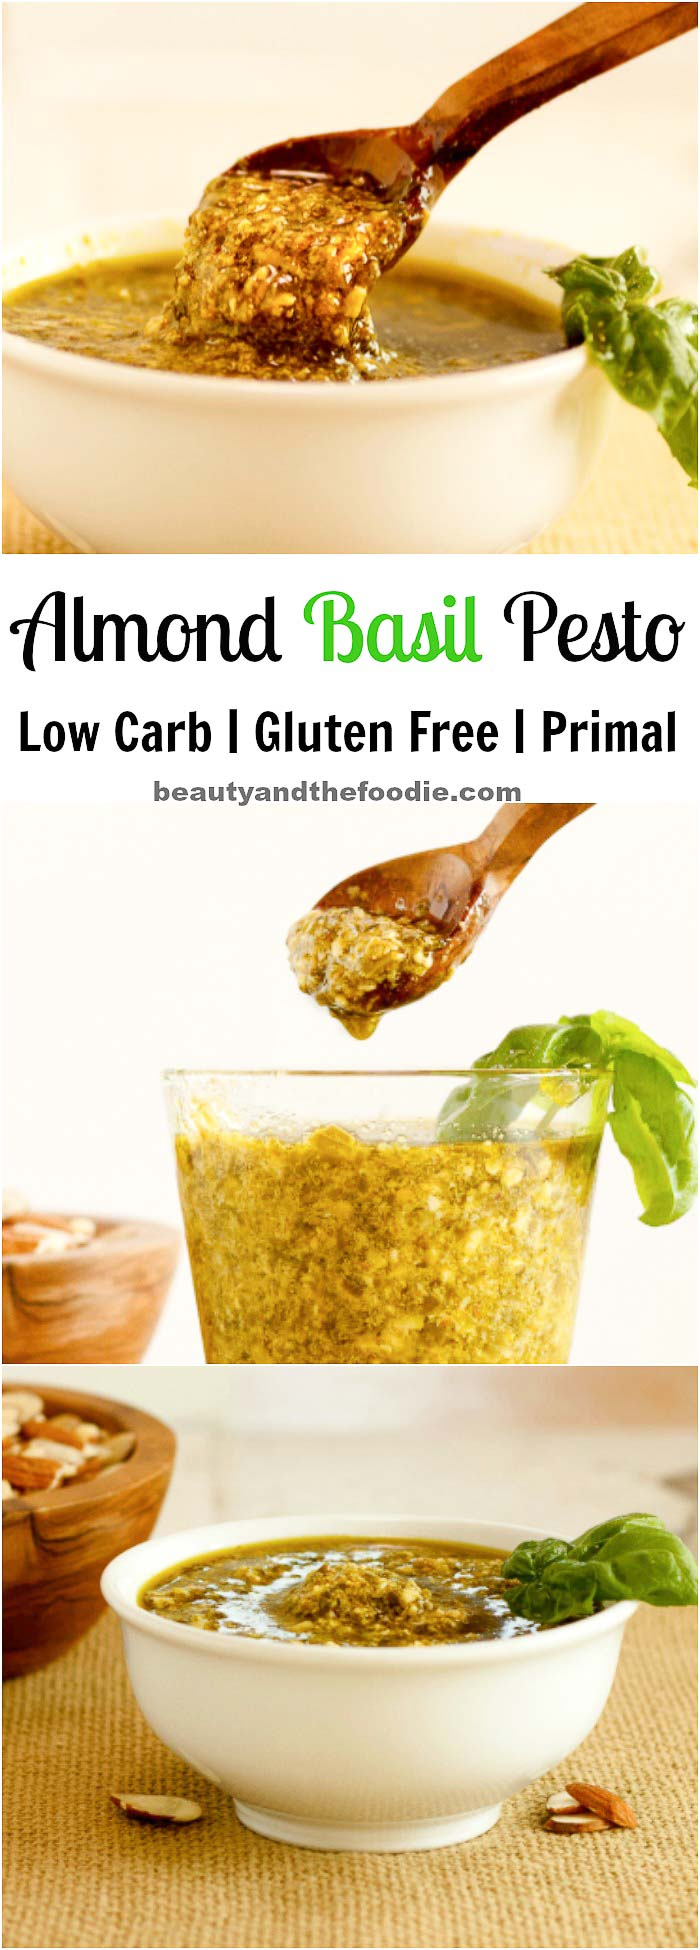 Almond Basil Pesto Sauce Low Carb, gluten free and paleo.